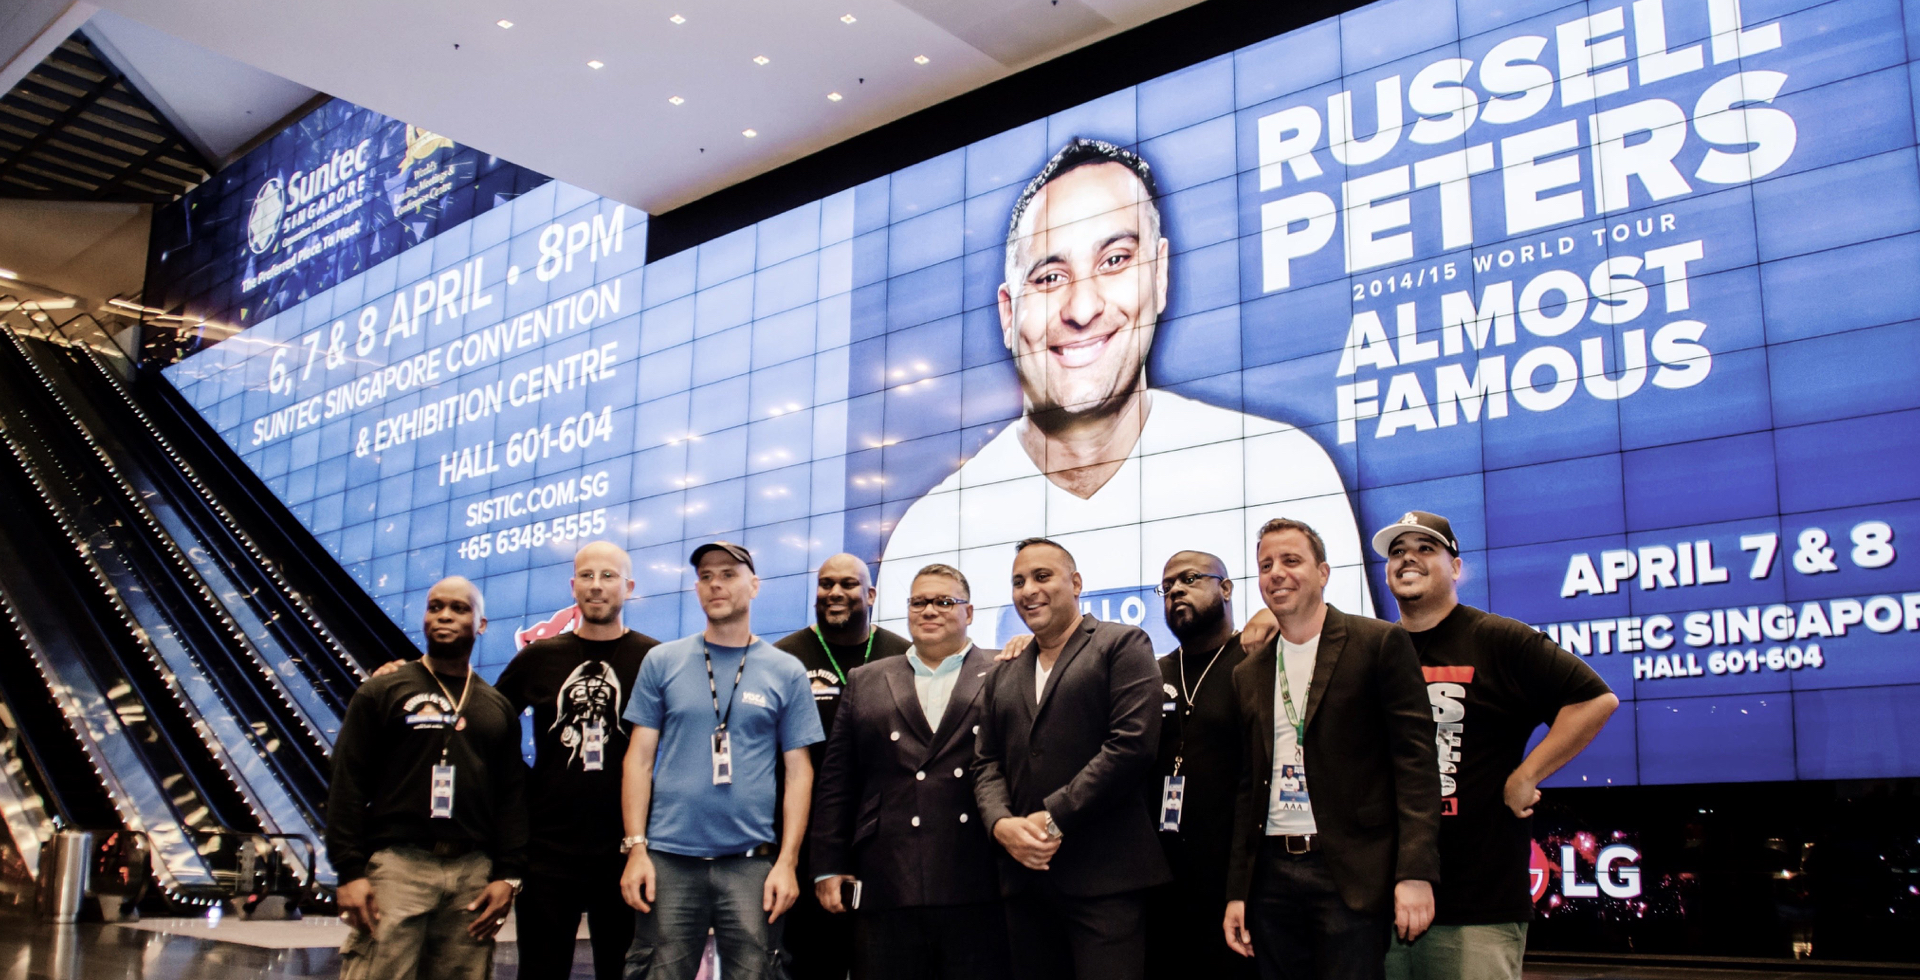 Russell Peters posing with his crew in front of his larger-than-life show image on Suntec Singapore's The Big Picture